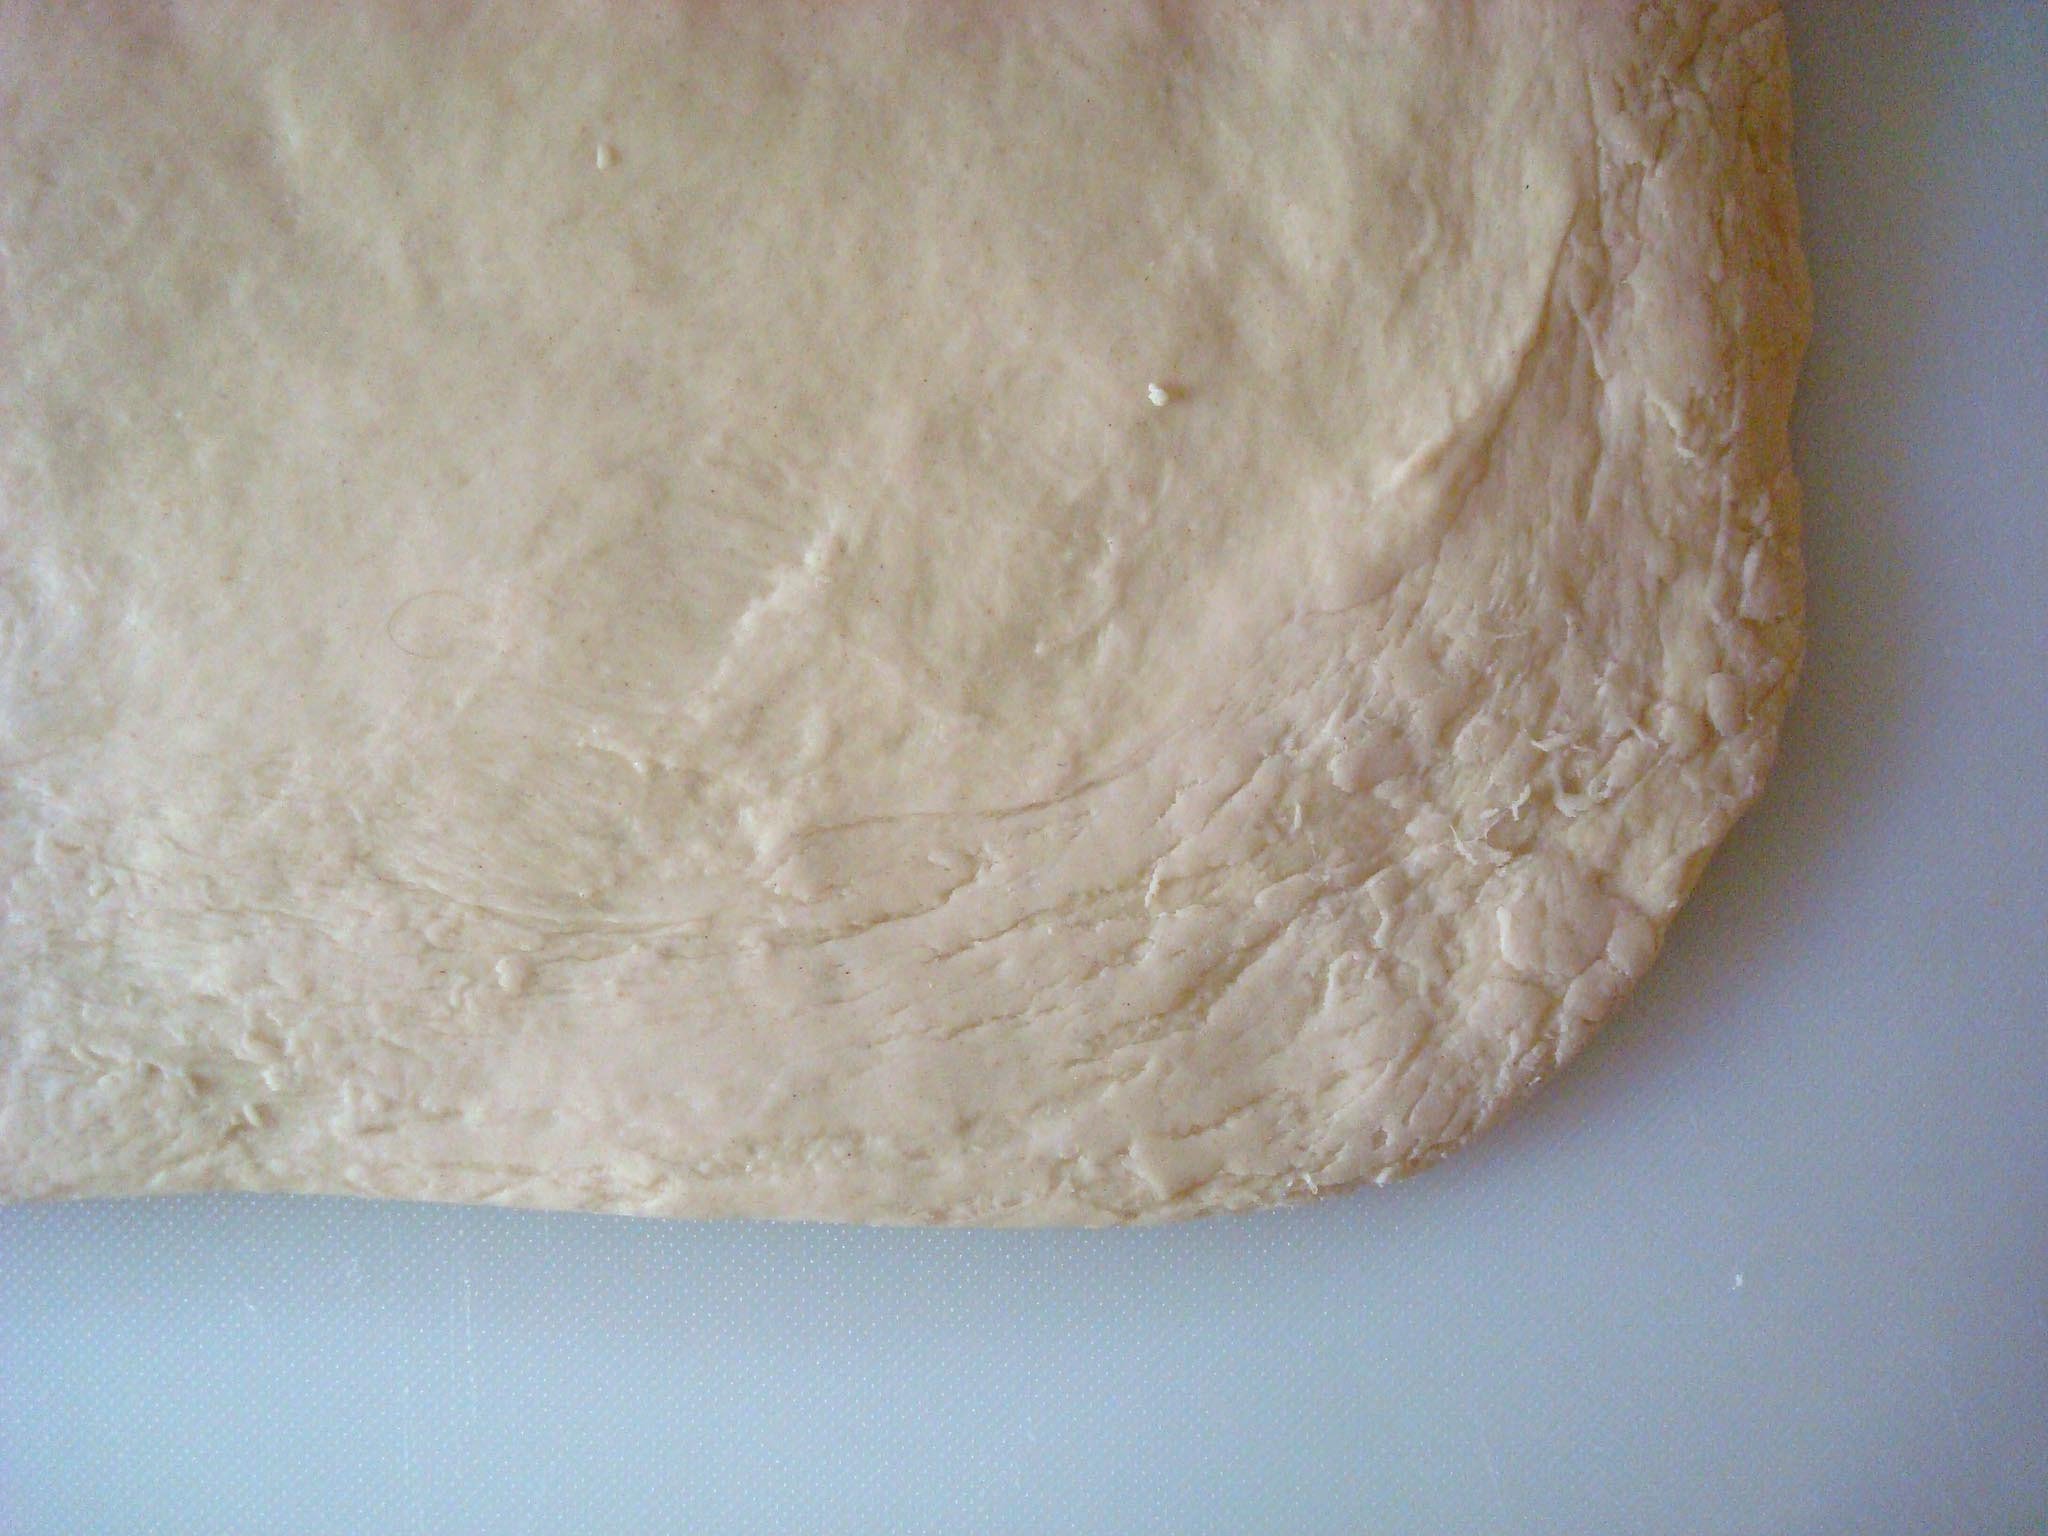 Rolled out sticky bun dough